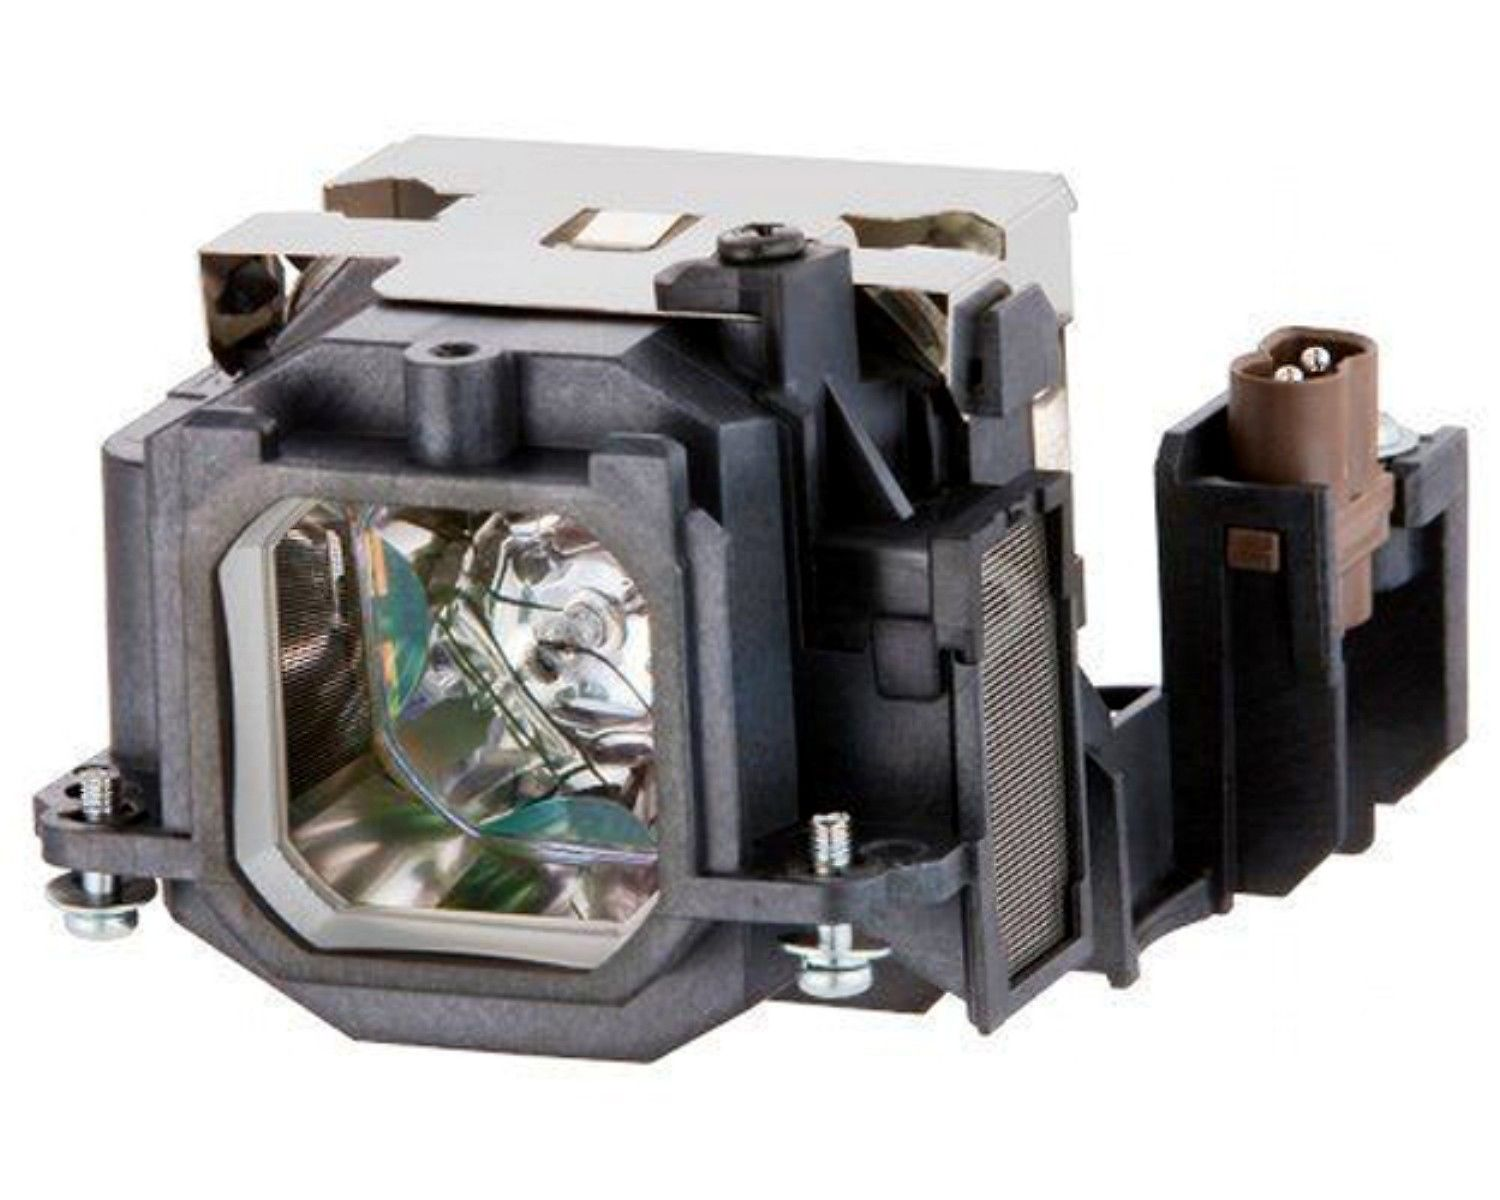 Projector Lamp Bulb ET-LAB2 ETLAB2 for Panasonic PT-LB1 PT-LB2 PT-LB1EA PT-LB2EA PT-ST10 PT-LB3E With Housing projector lamp bulb et lap770 etlap770 lap770 for panasonic pt px770 pt px770nt pt px760 pt px860 pt 870ne with housing